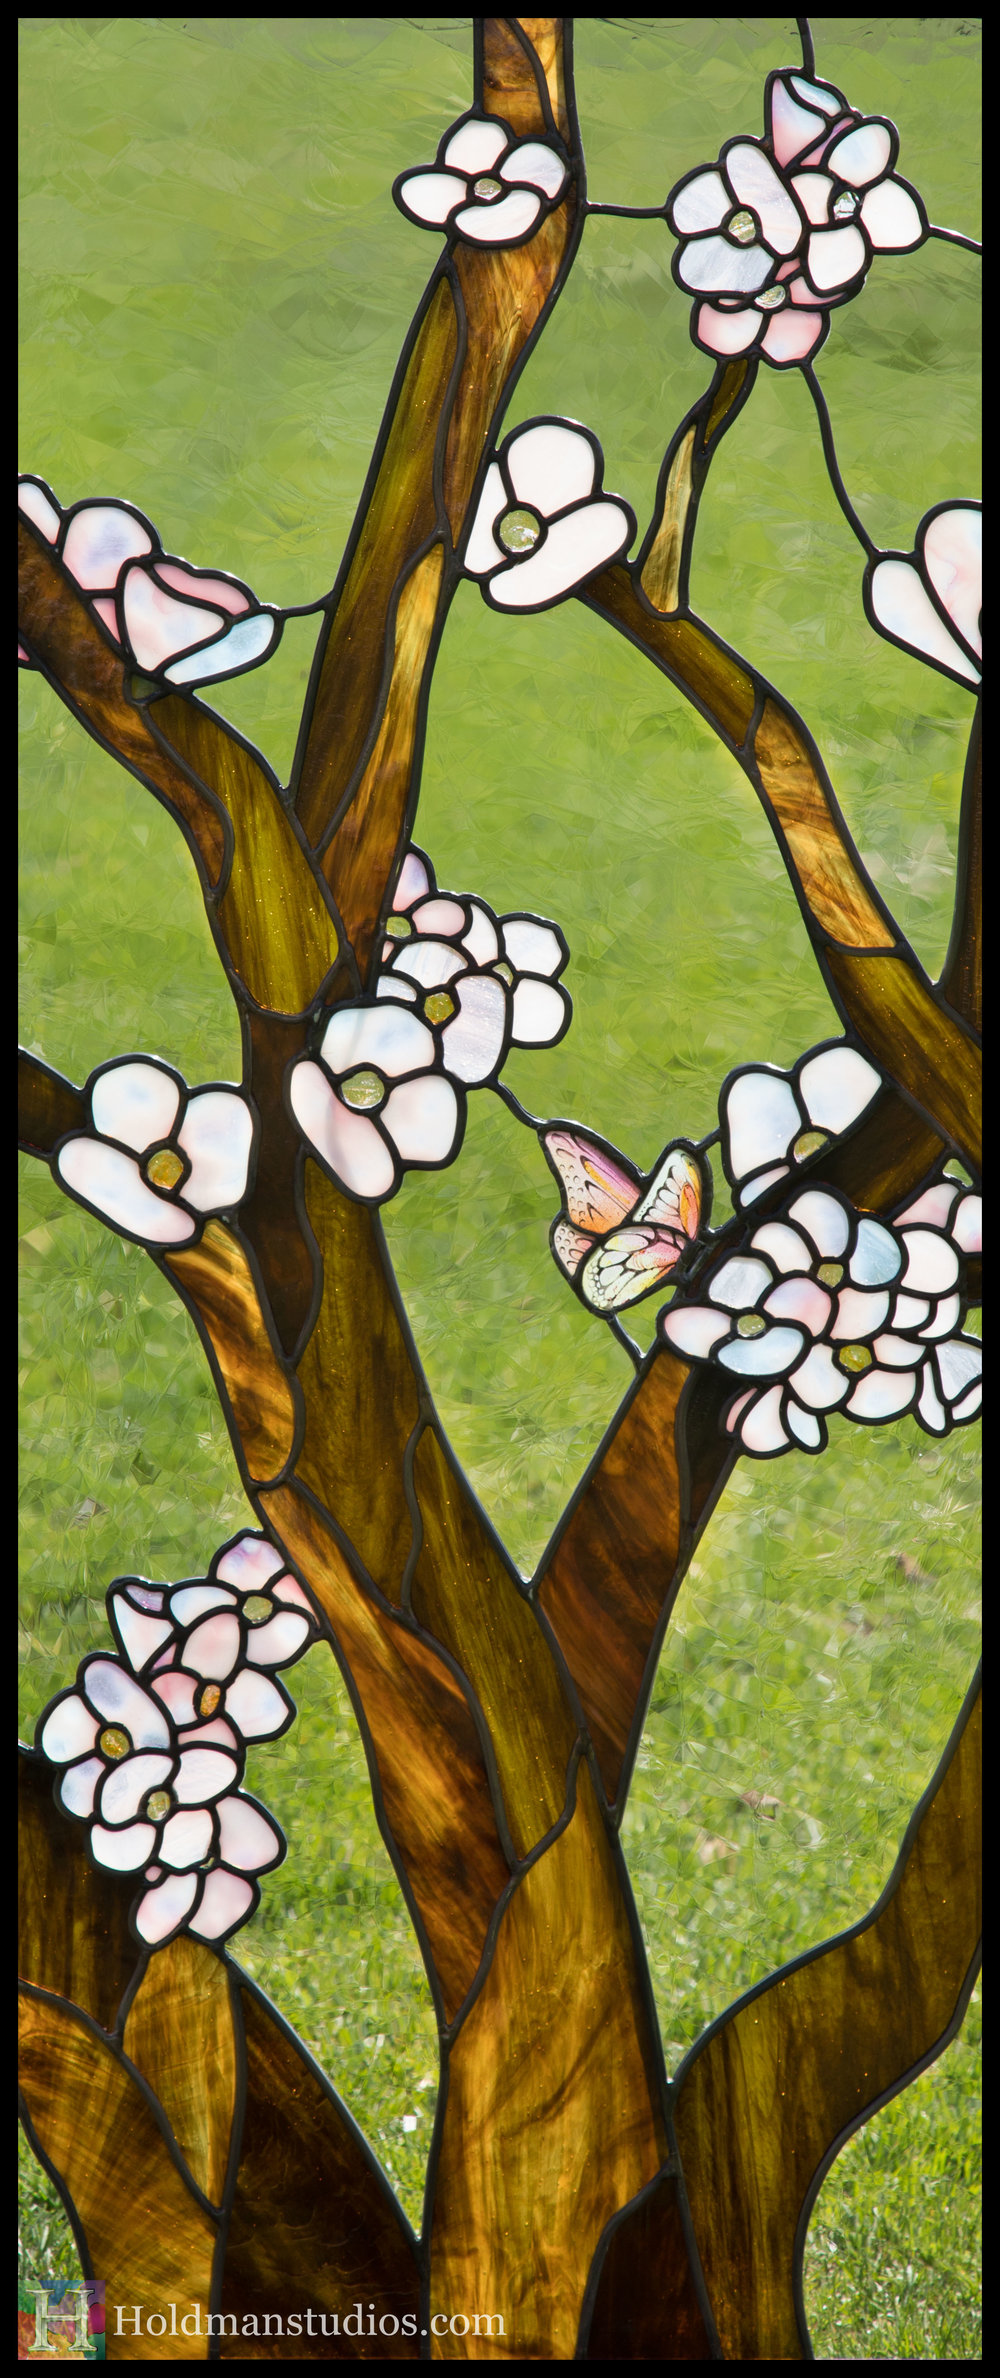 Holdman-Studios-Stained-Glass-Window-Cherry-Tree-Branches-Blossom-Flowers-Butterfly-Grass-Right.jpg